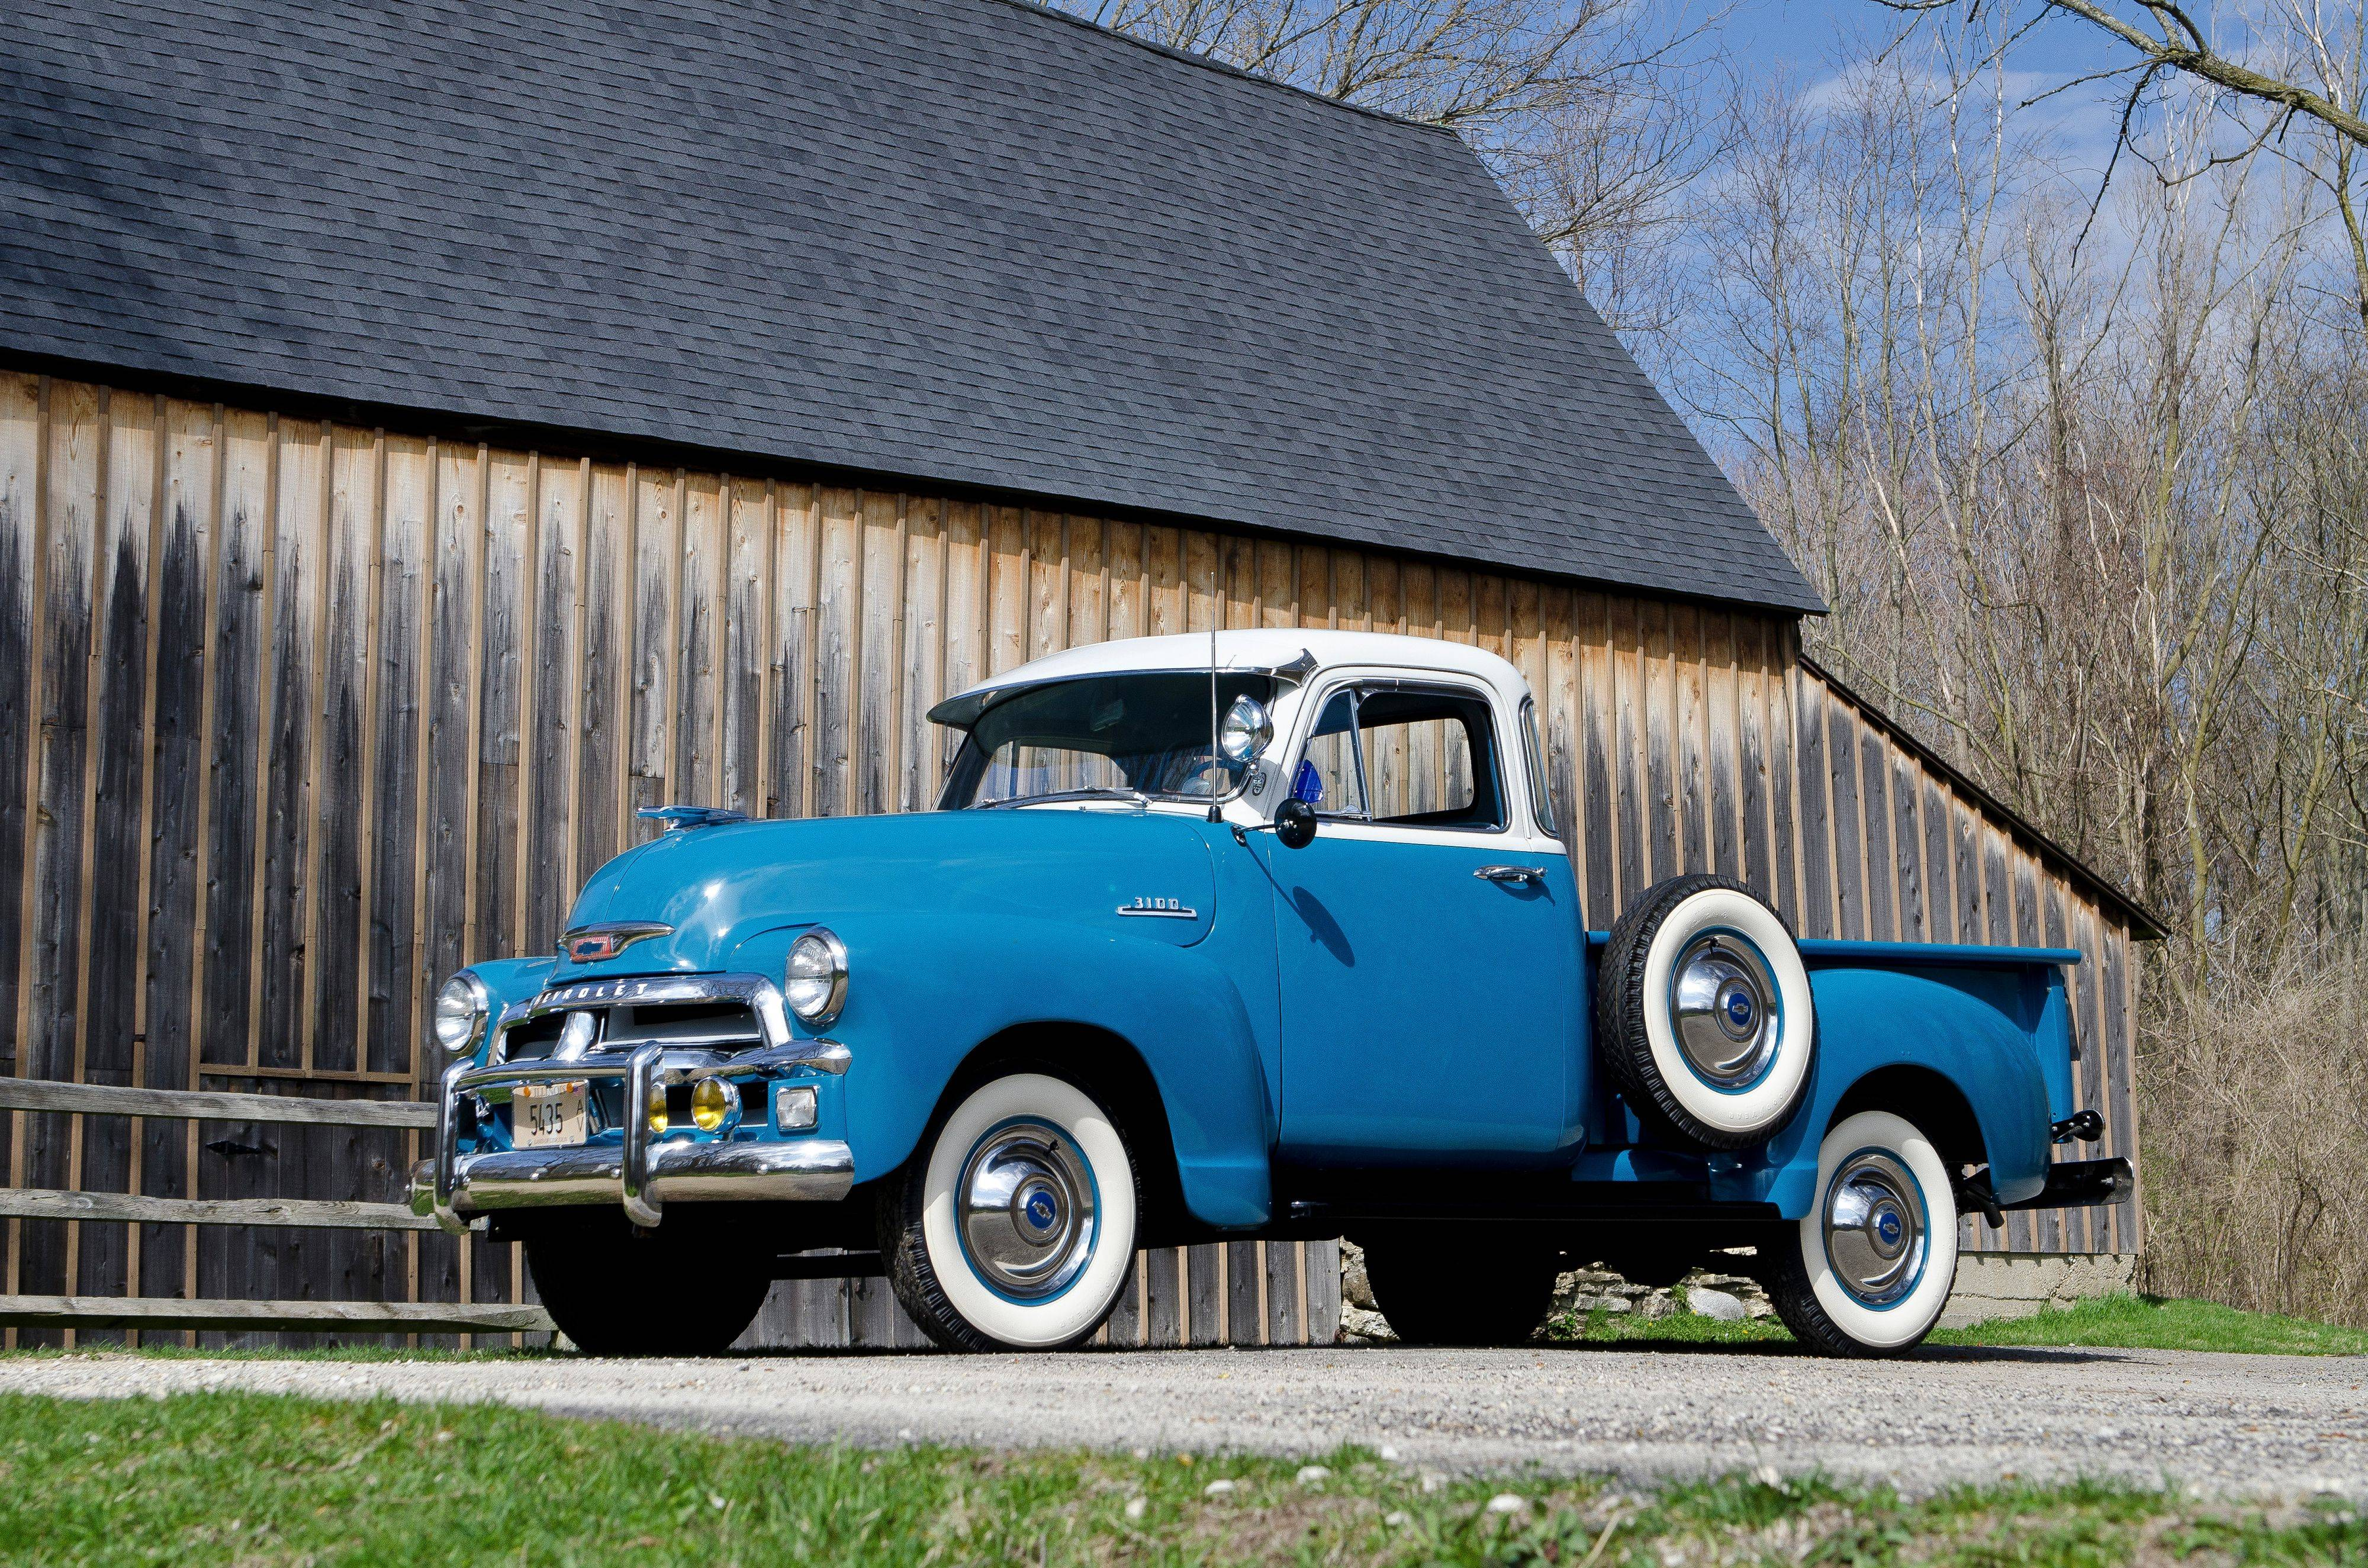 Hanover Park man's Chevy truck a 1954 classic